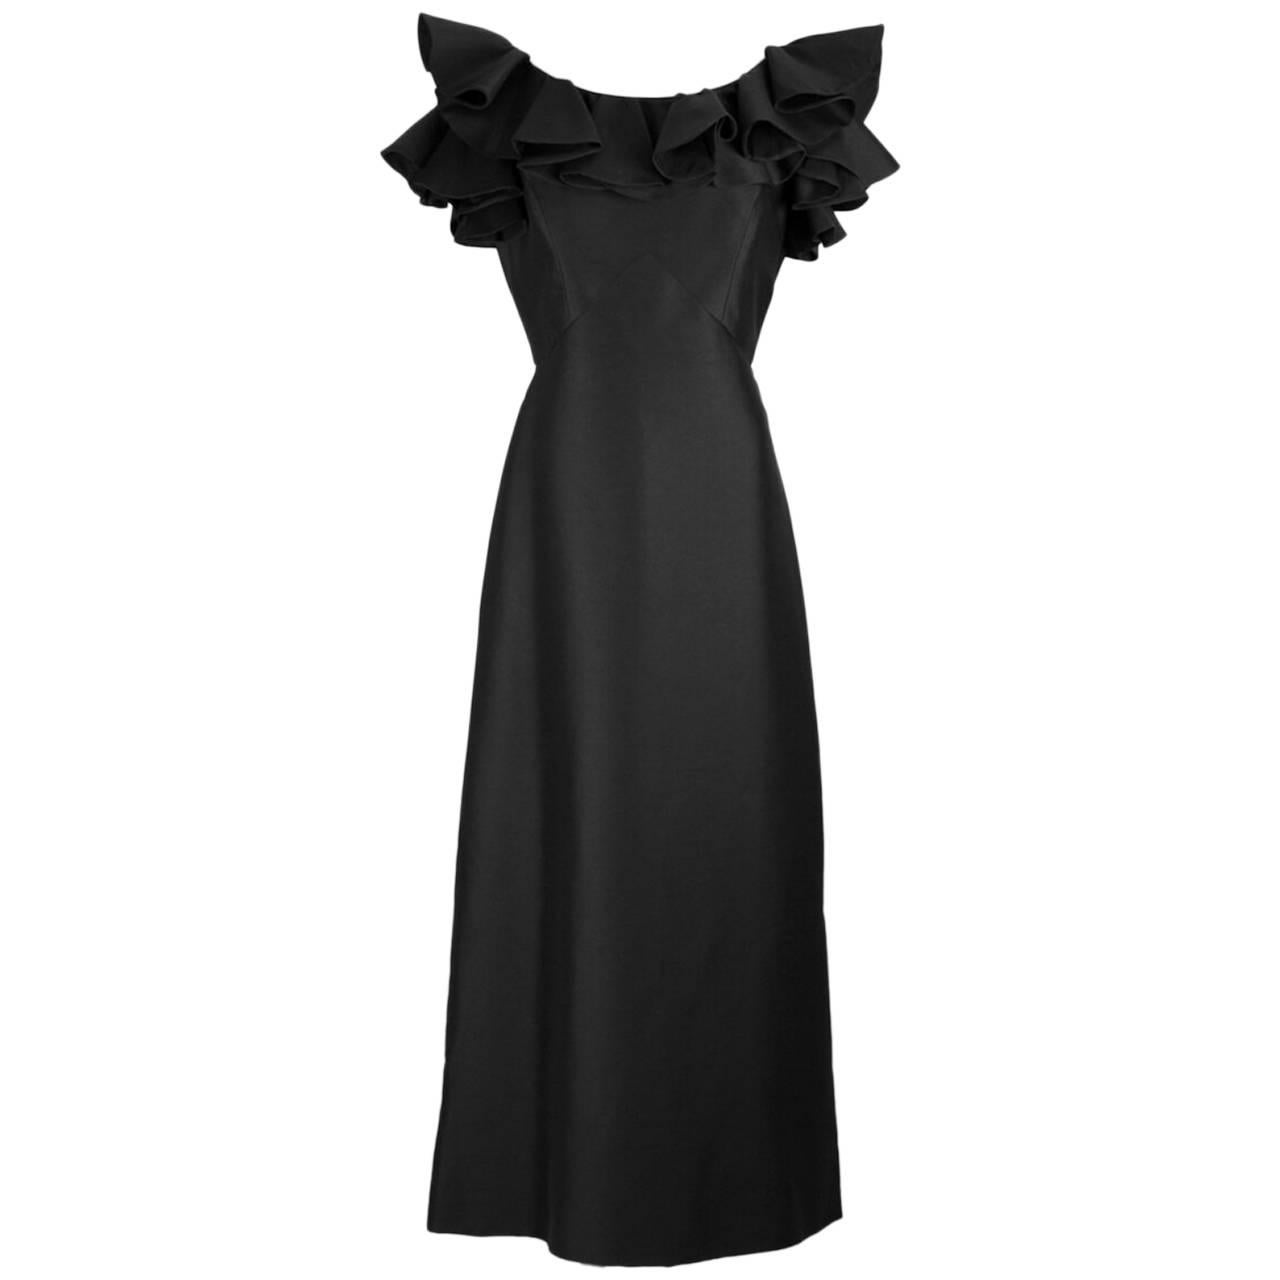 Swanson's On The Plaza Black Evening Dress Gown With Ruffled Collar And Slit